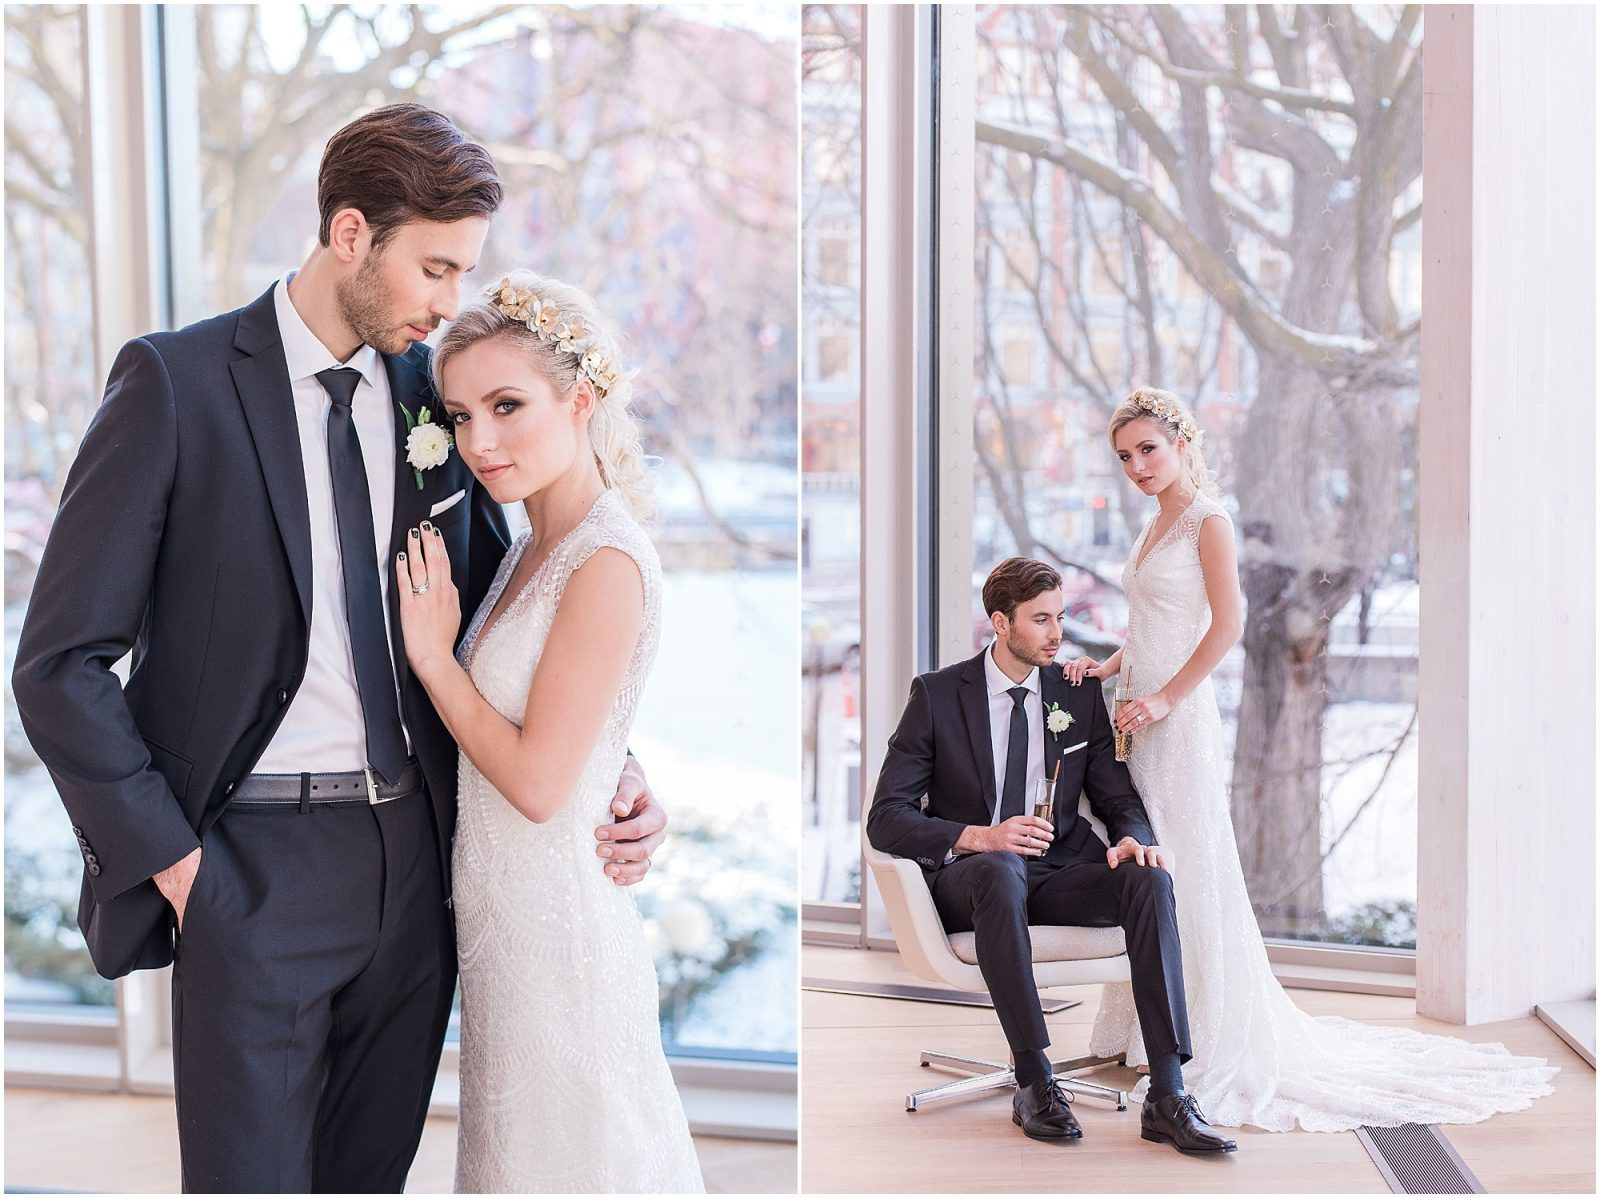 Wedding O'Born Room NAC Ottawa - New Years Glam Wedding Inspiration - tall and short couple posing